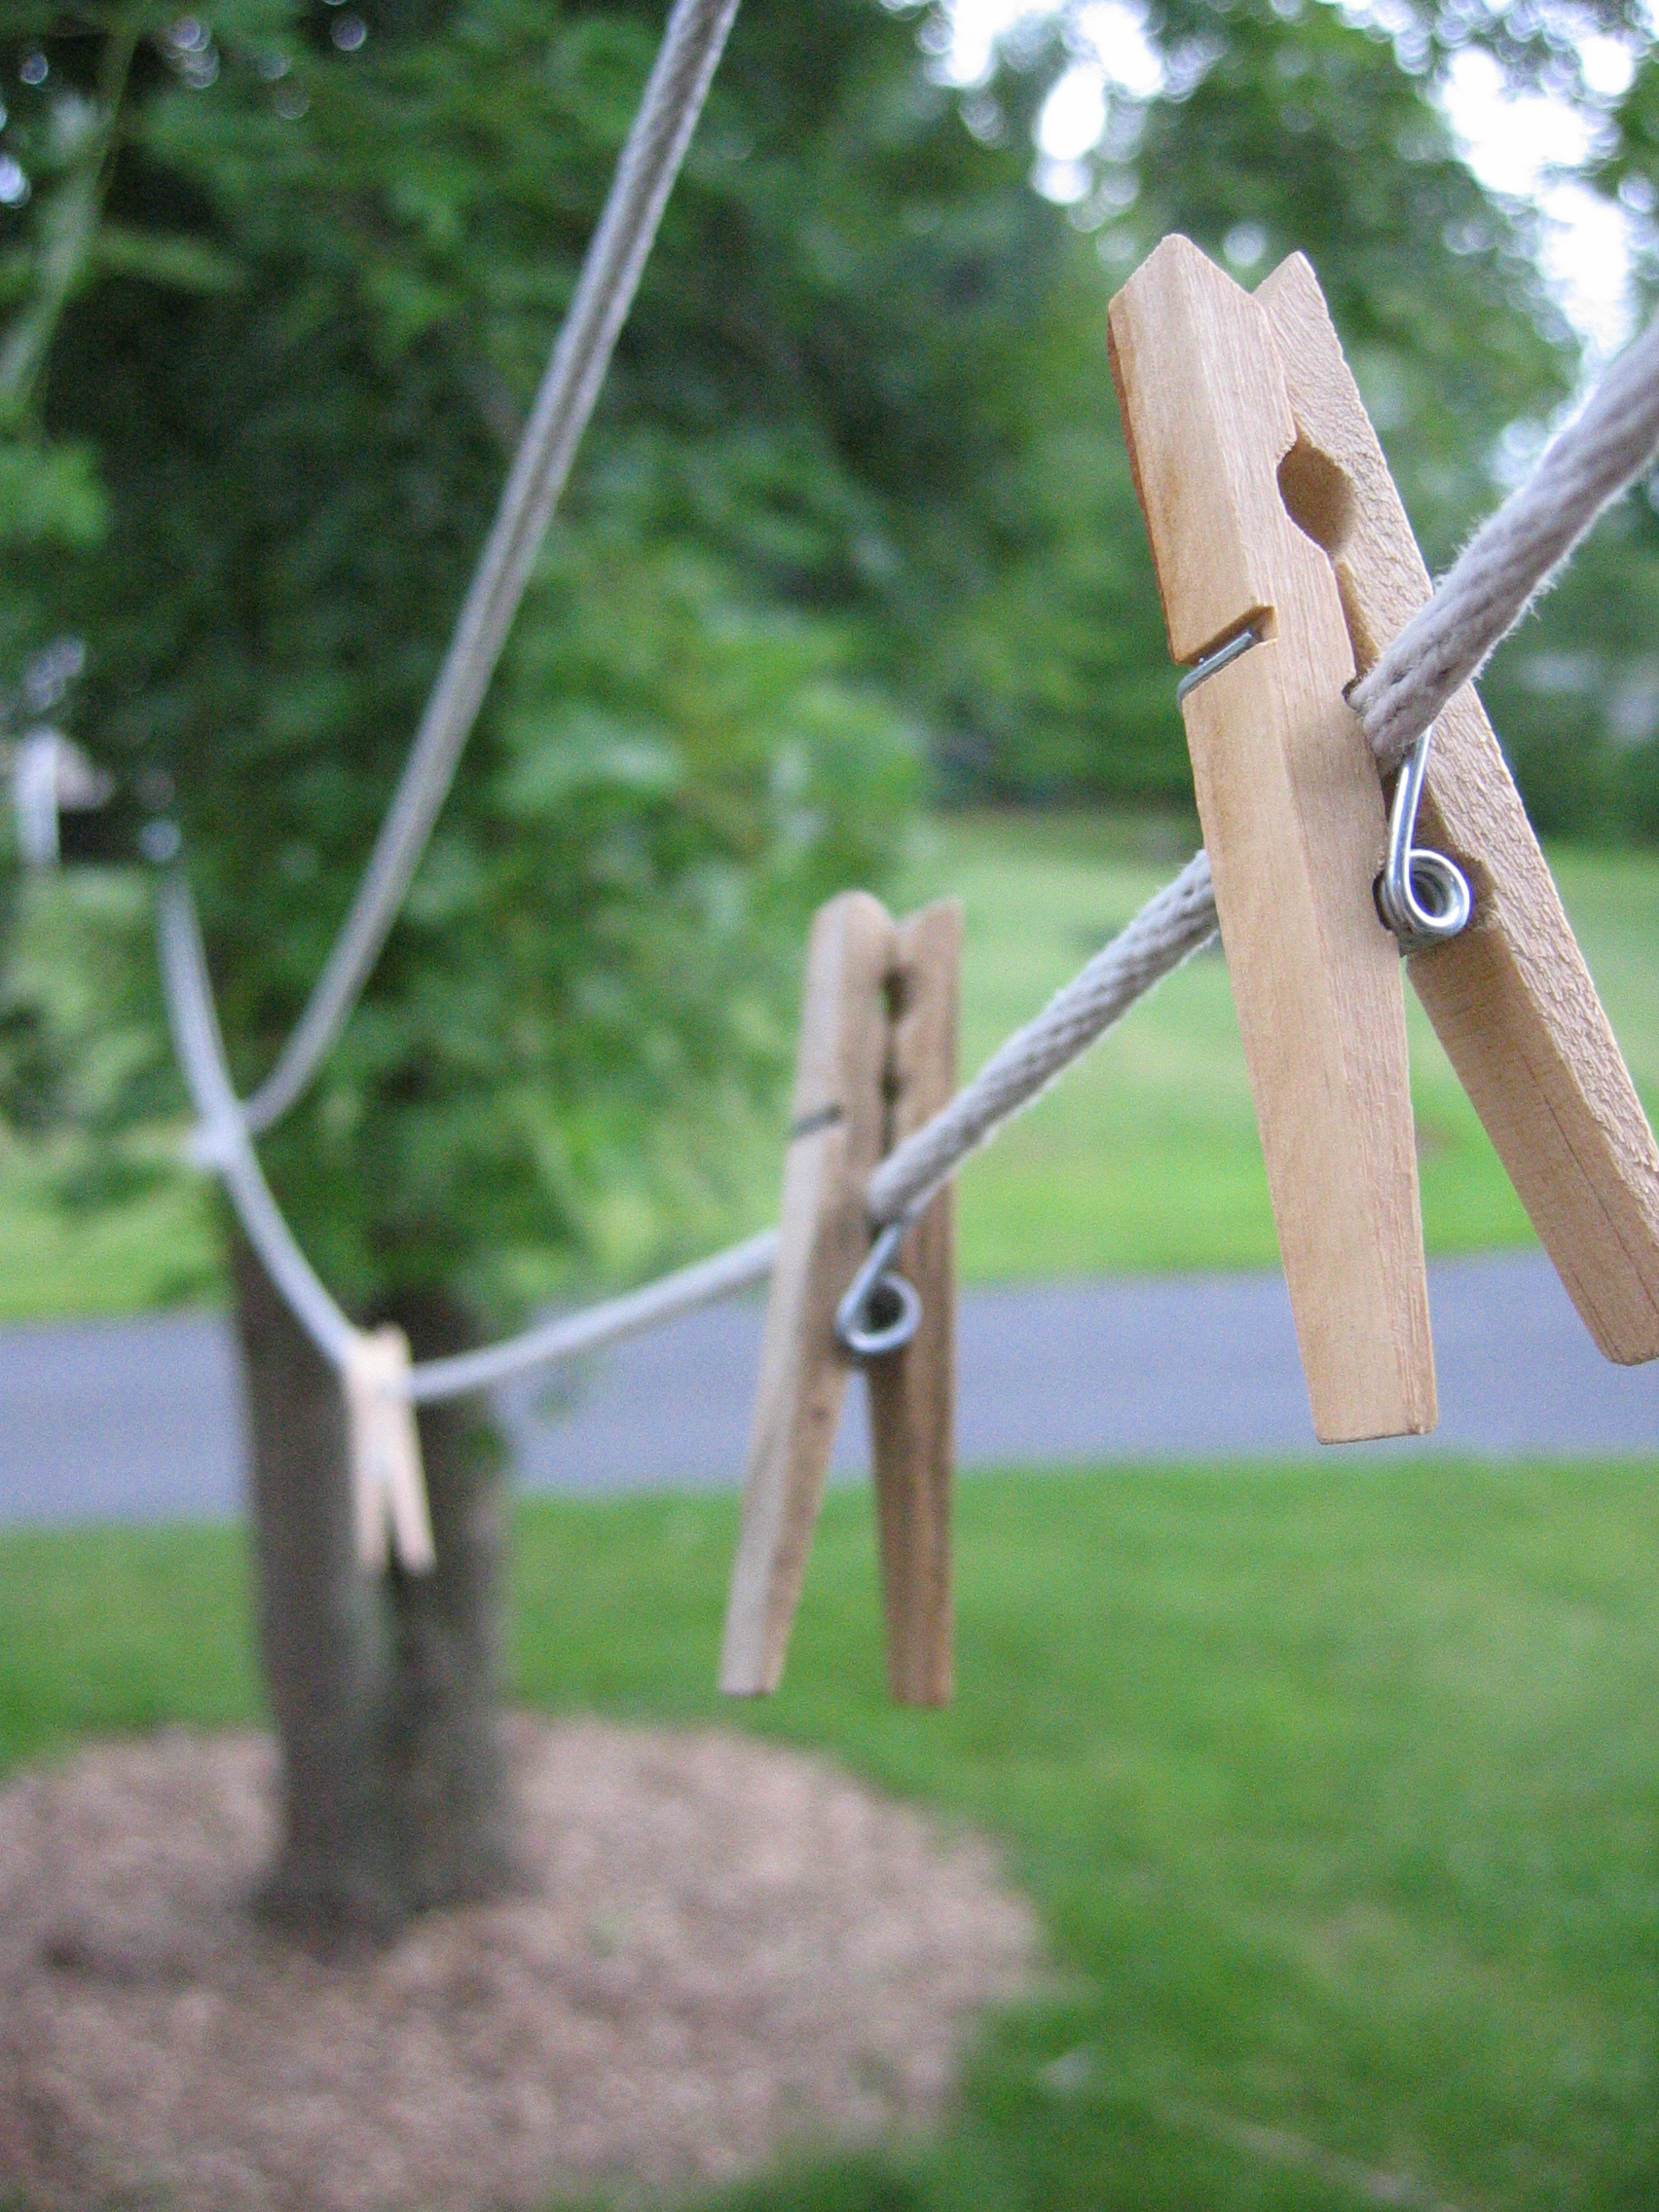 Simple pleasures of summer - clotheslines